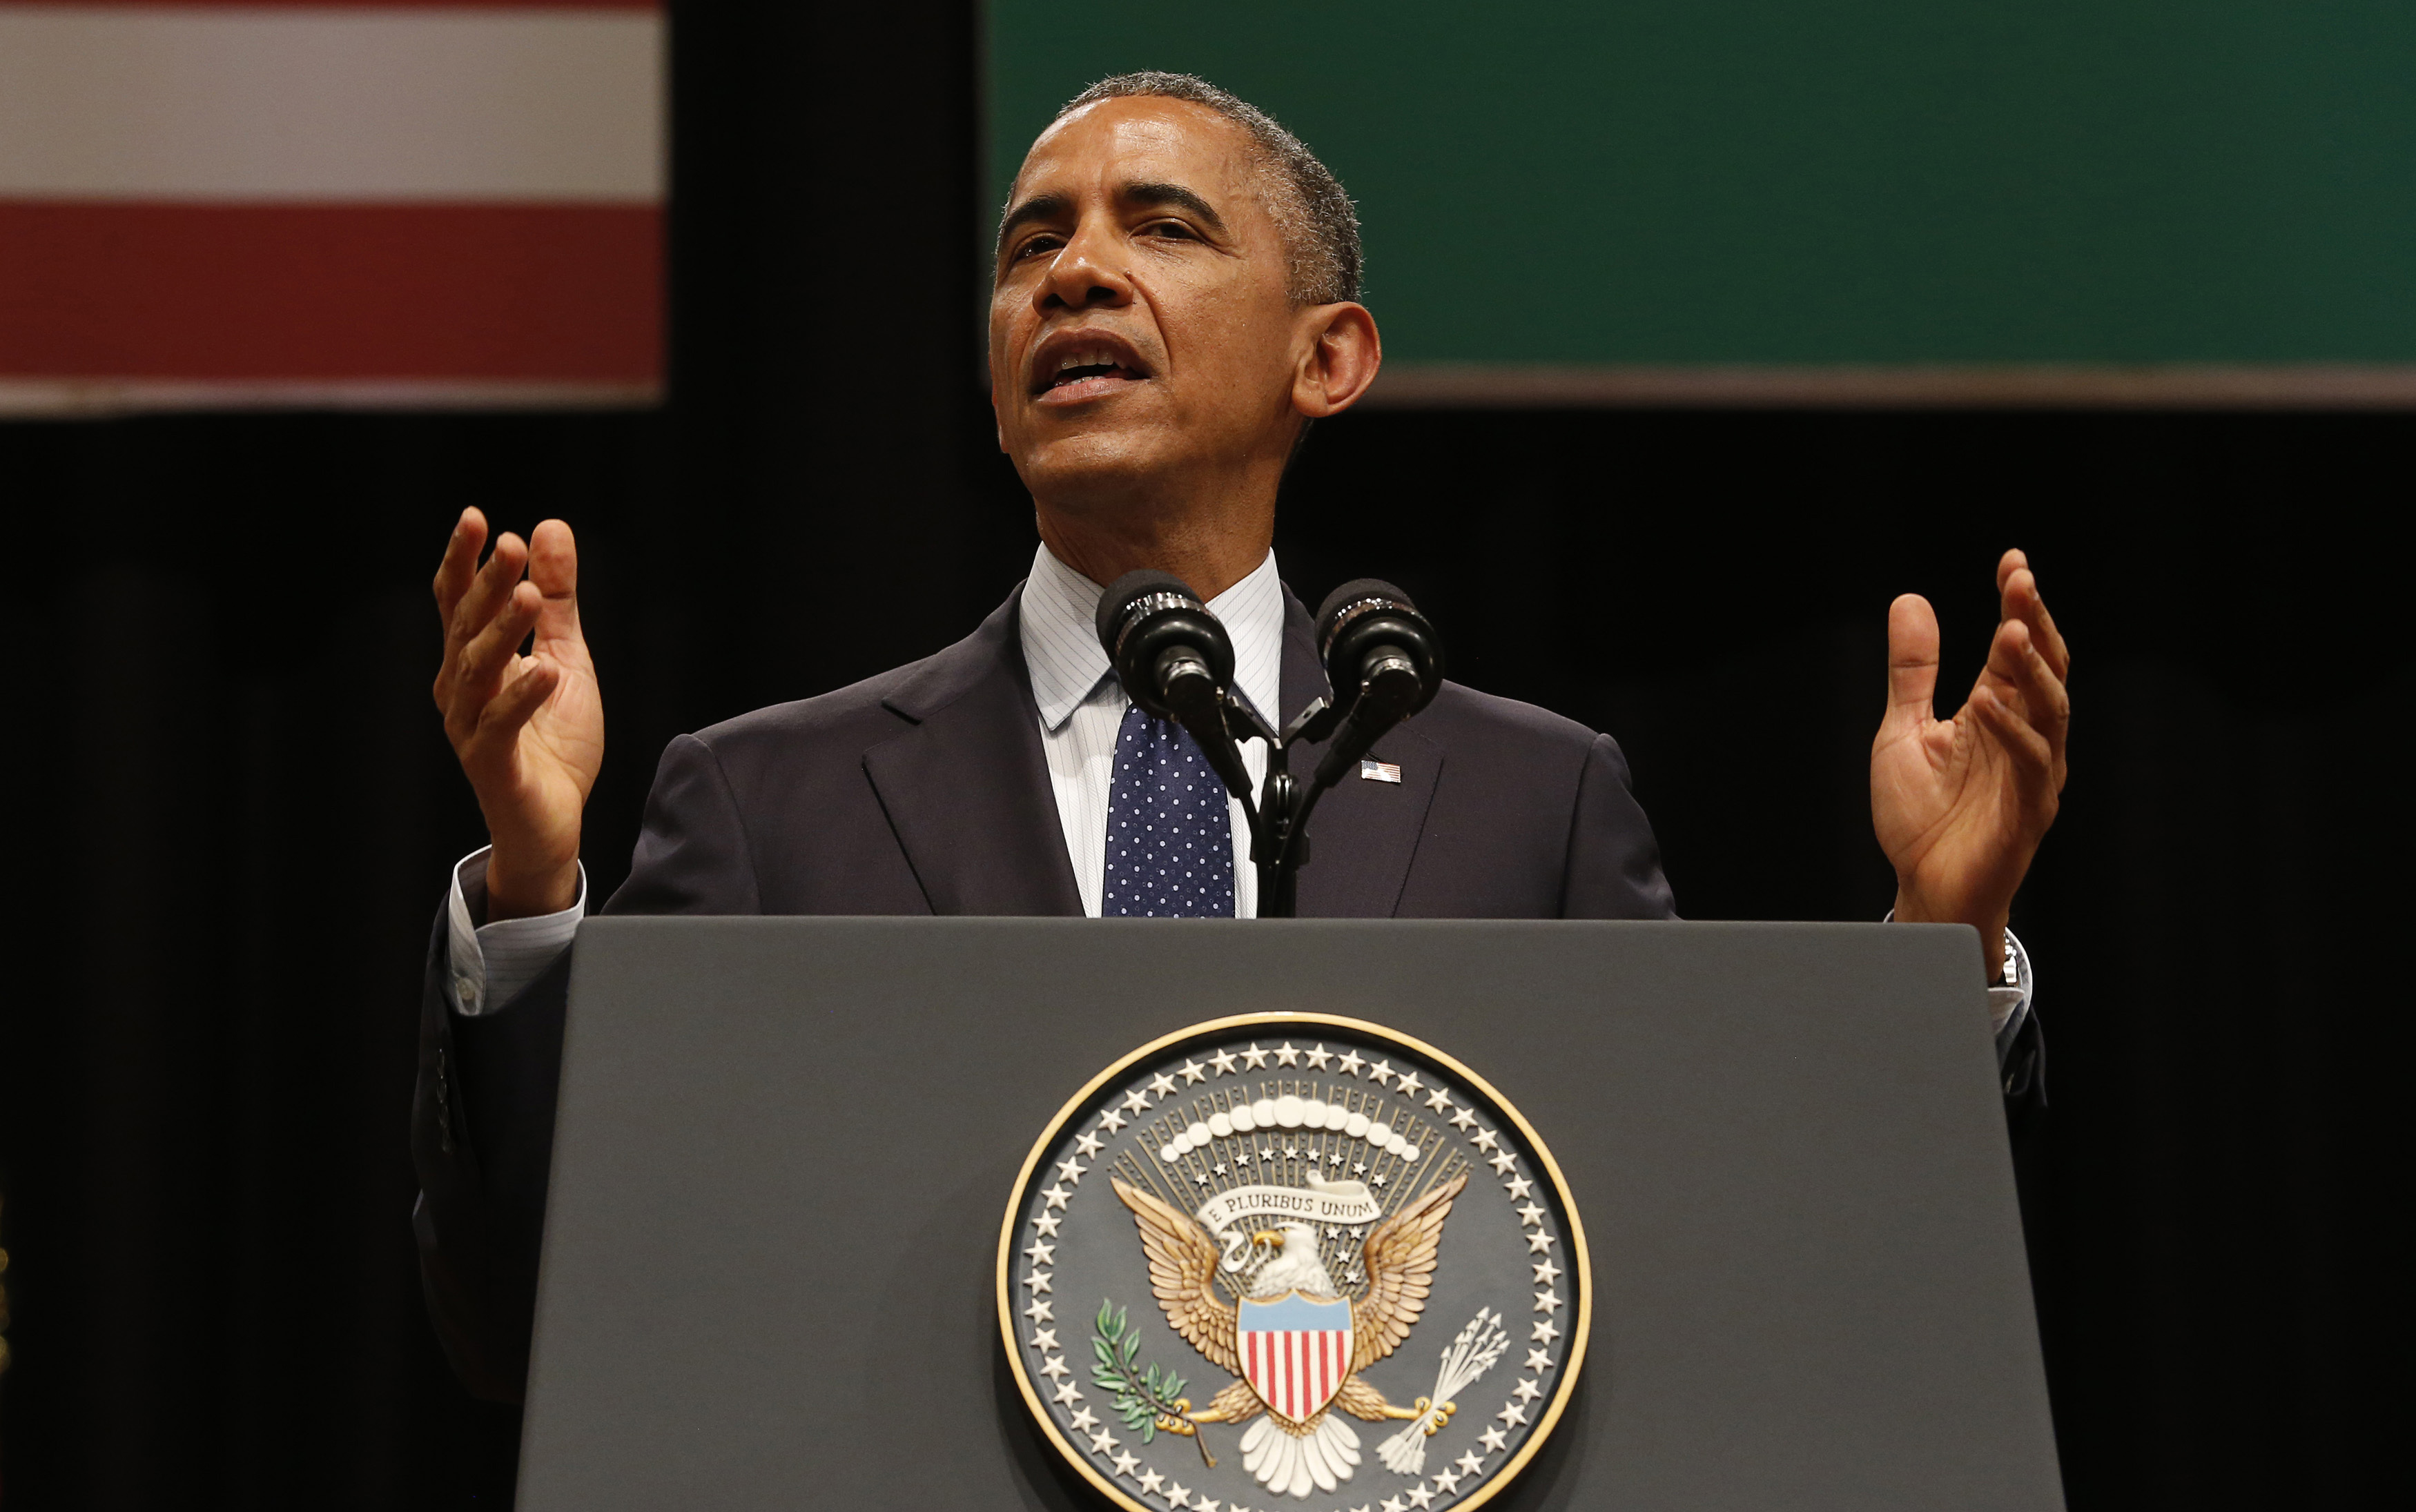 U.S. President Barack Obama delivers a speech at Siri Fort Auditorium in New Delhi on Jan. 27, 2015